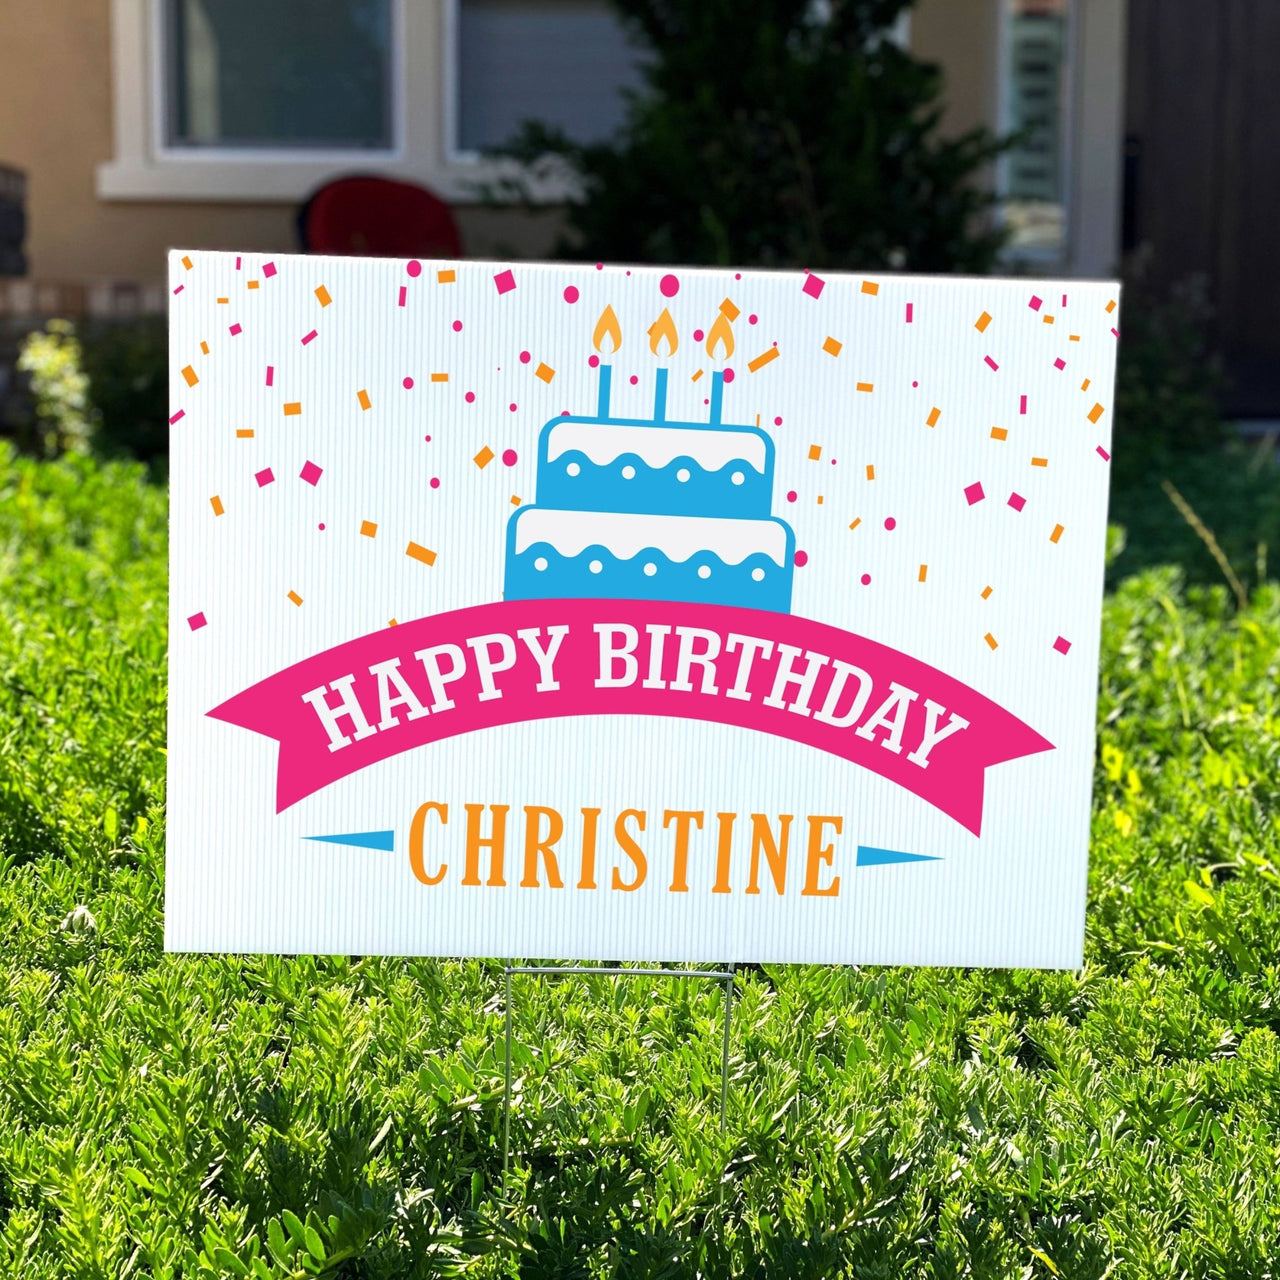 Birthday Cake Personalized Birthday Yard Sign - Rich Design Co